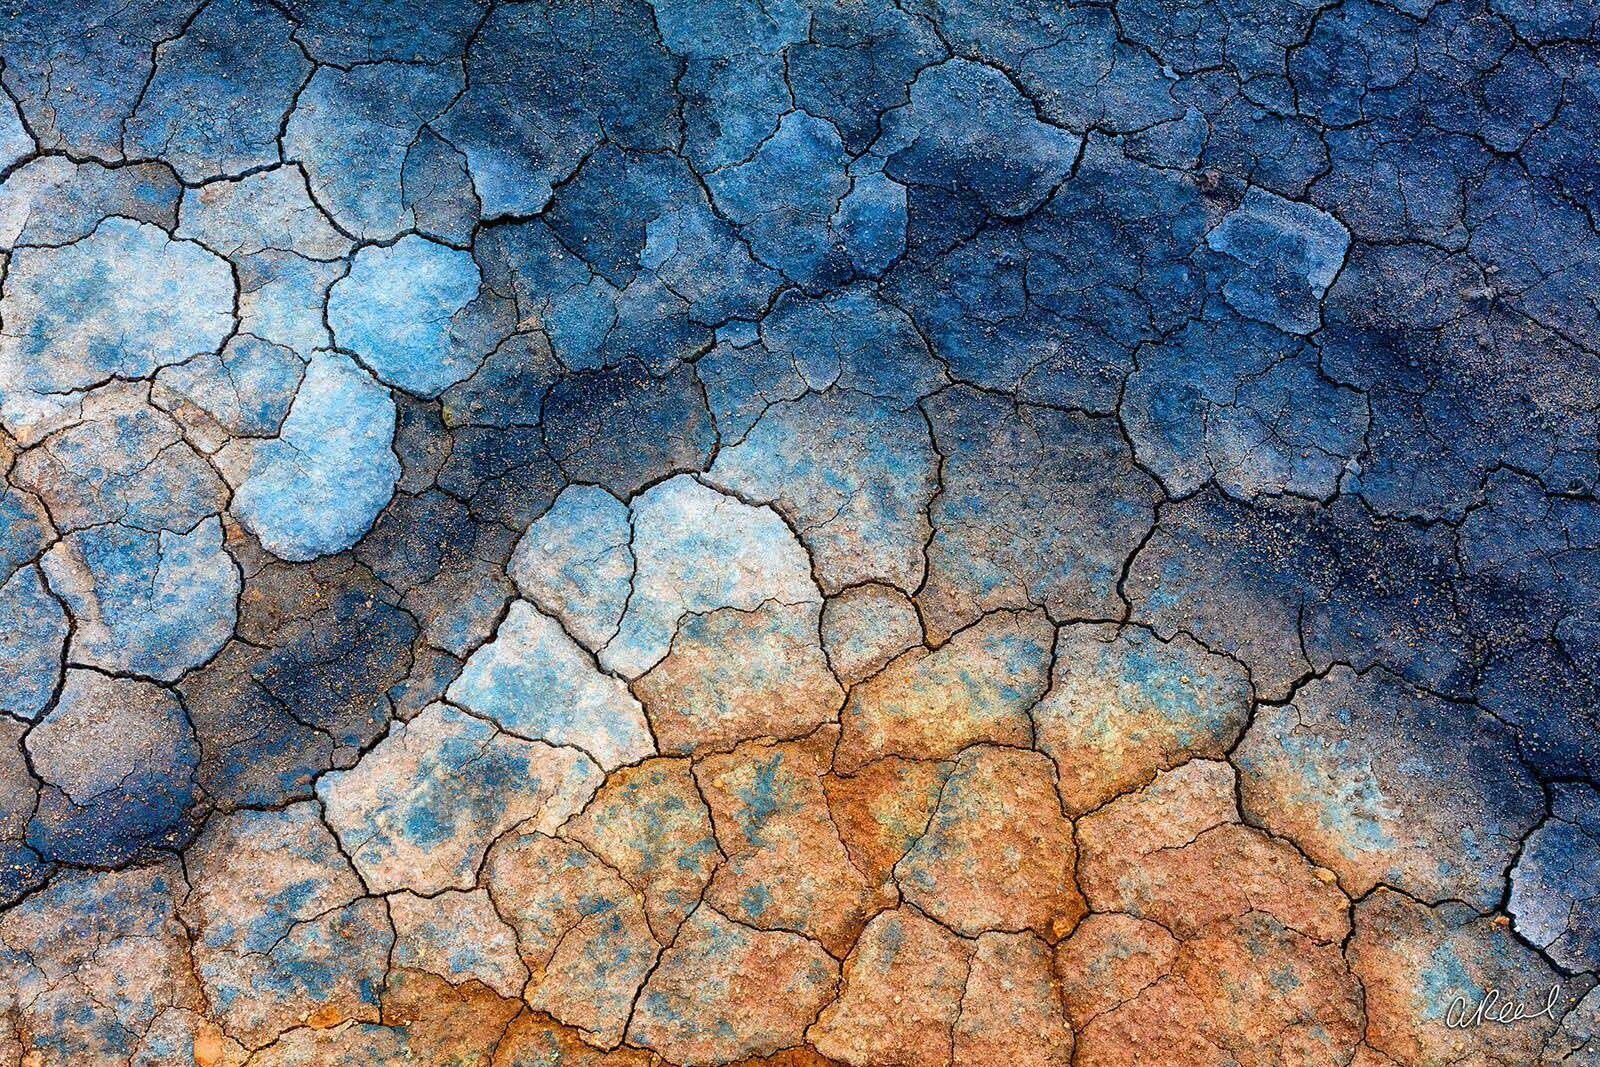 Transform your space with Aaron Reed's limited edition photography print, Dragonskin, from his Abstract Nature Photography collection...